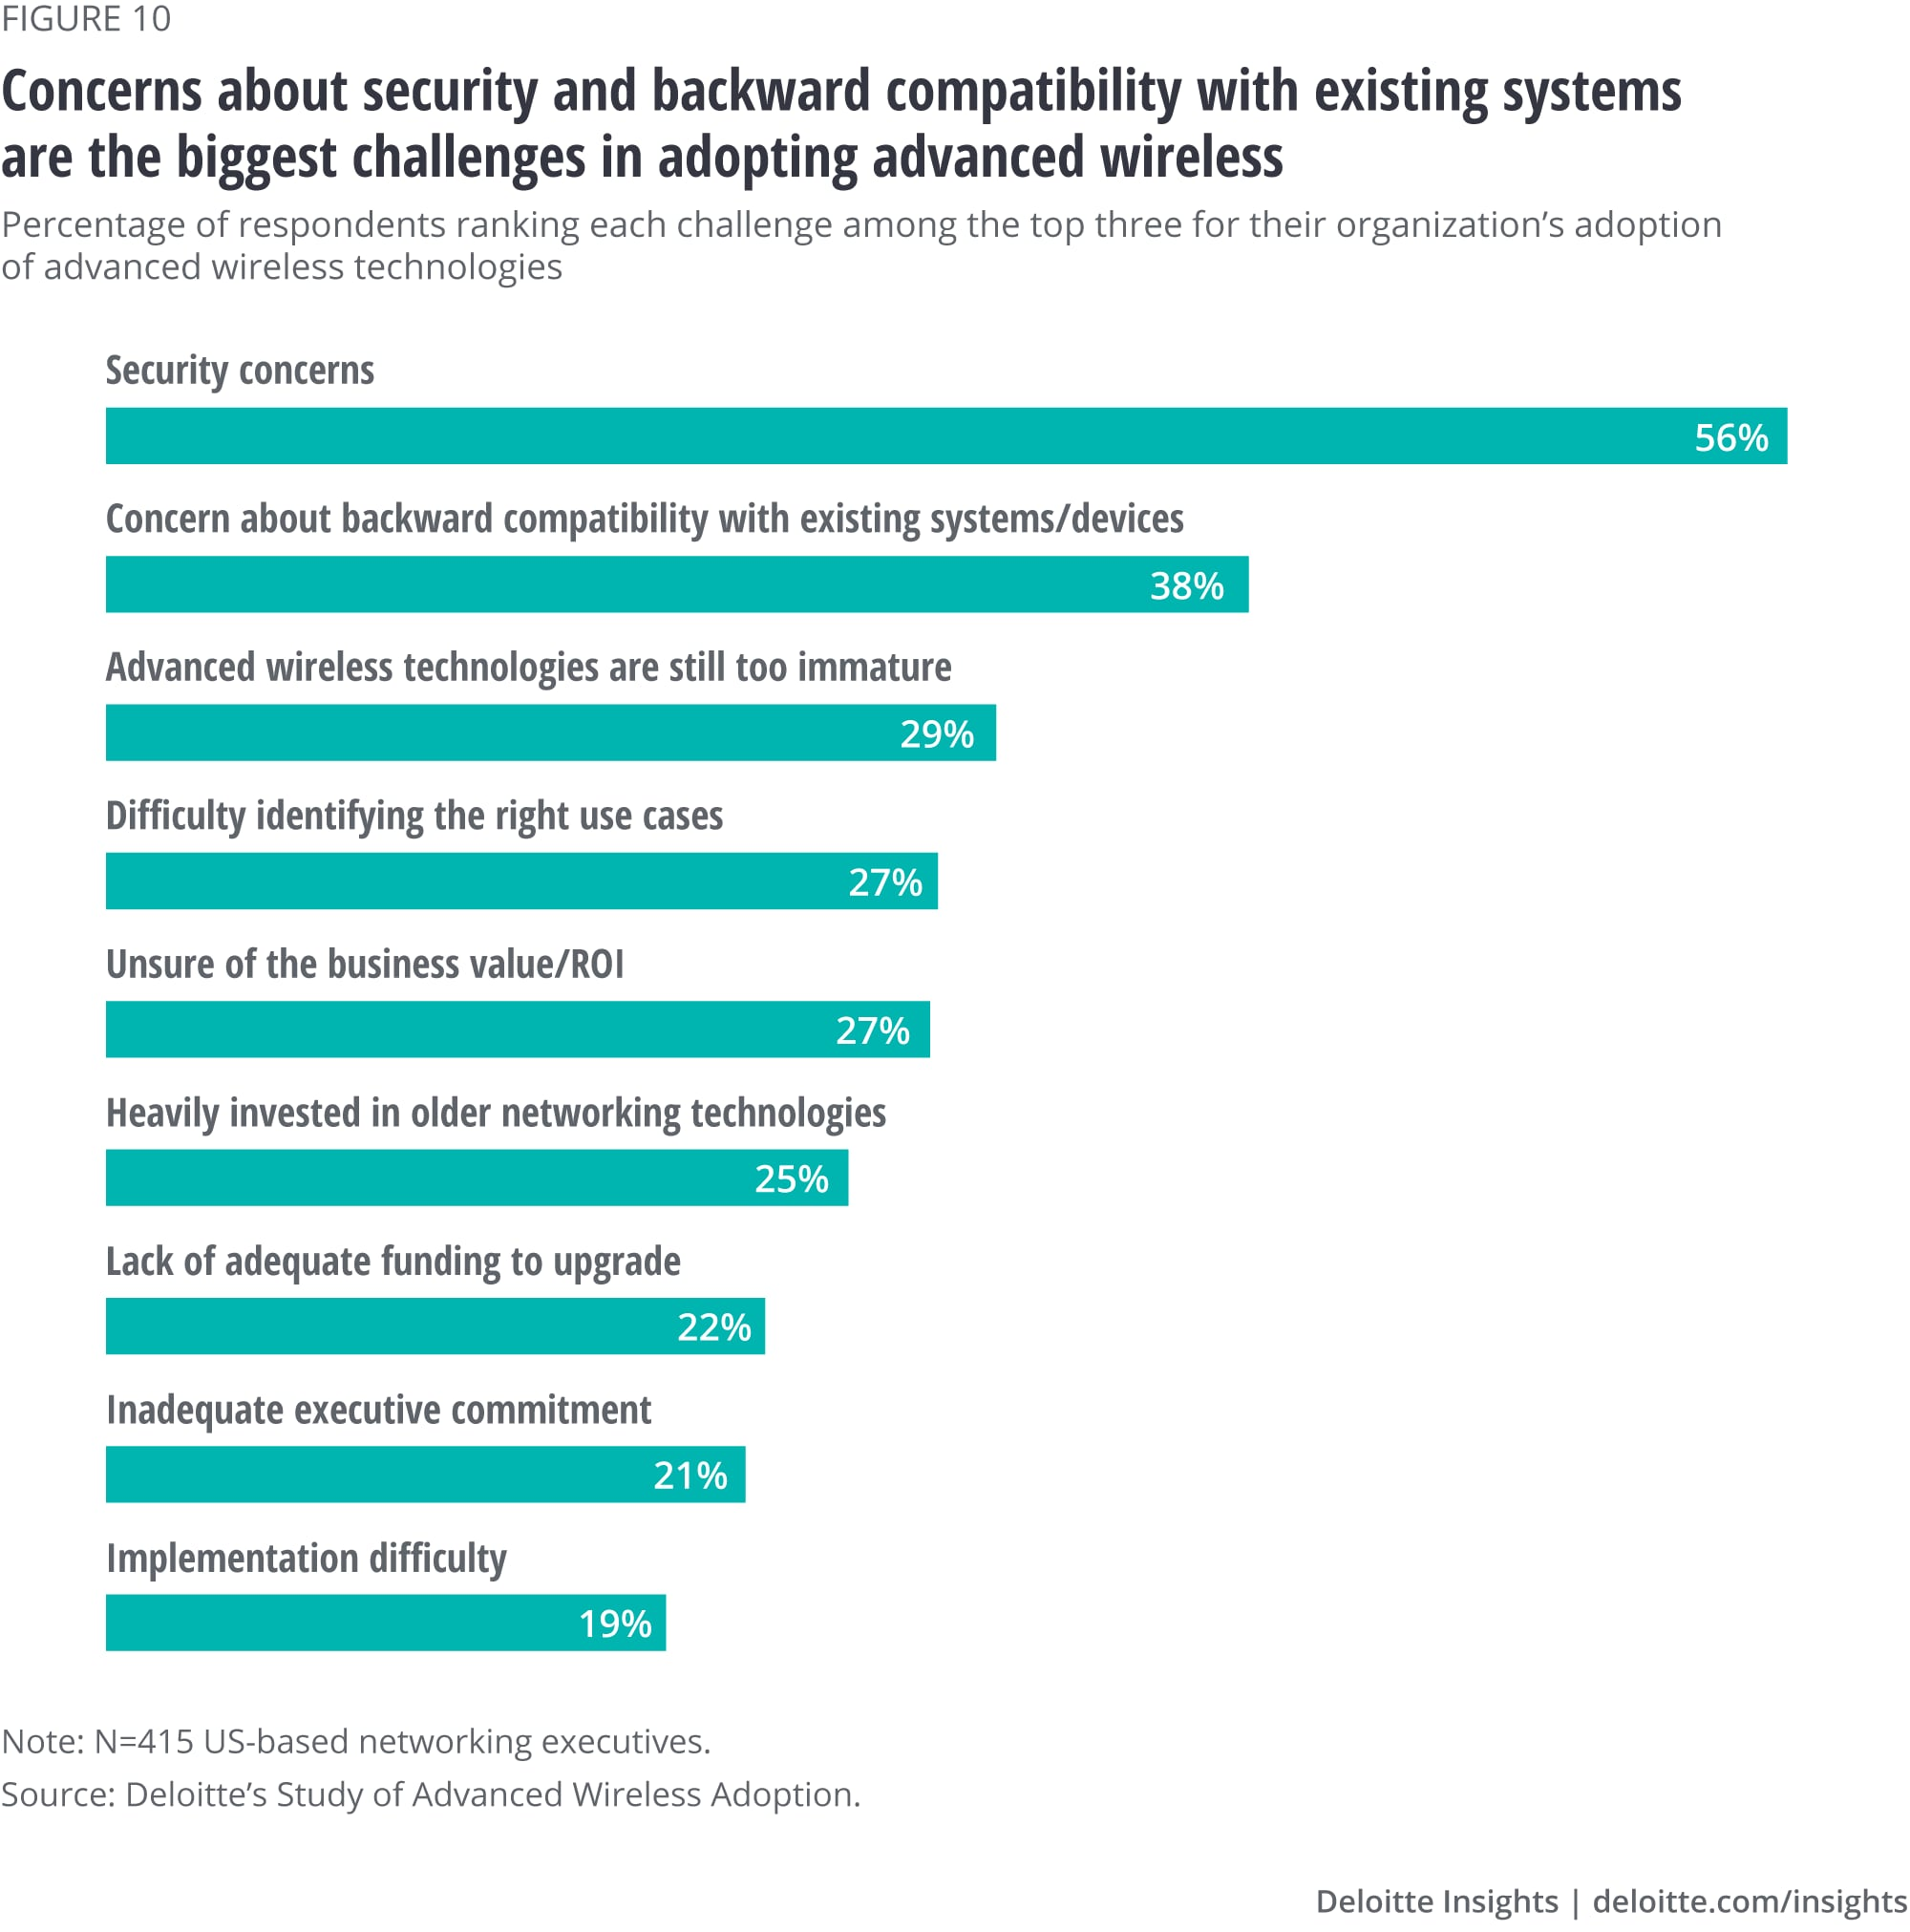 Concerns about security and backward compatibility with existing systems are the biggest challenges in adopting advanced wireless